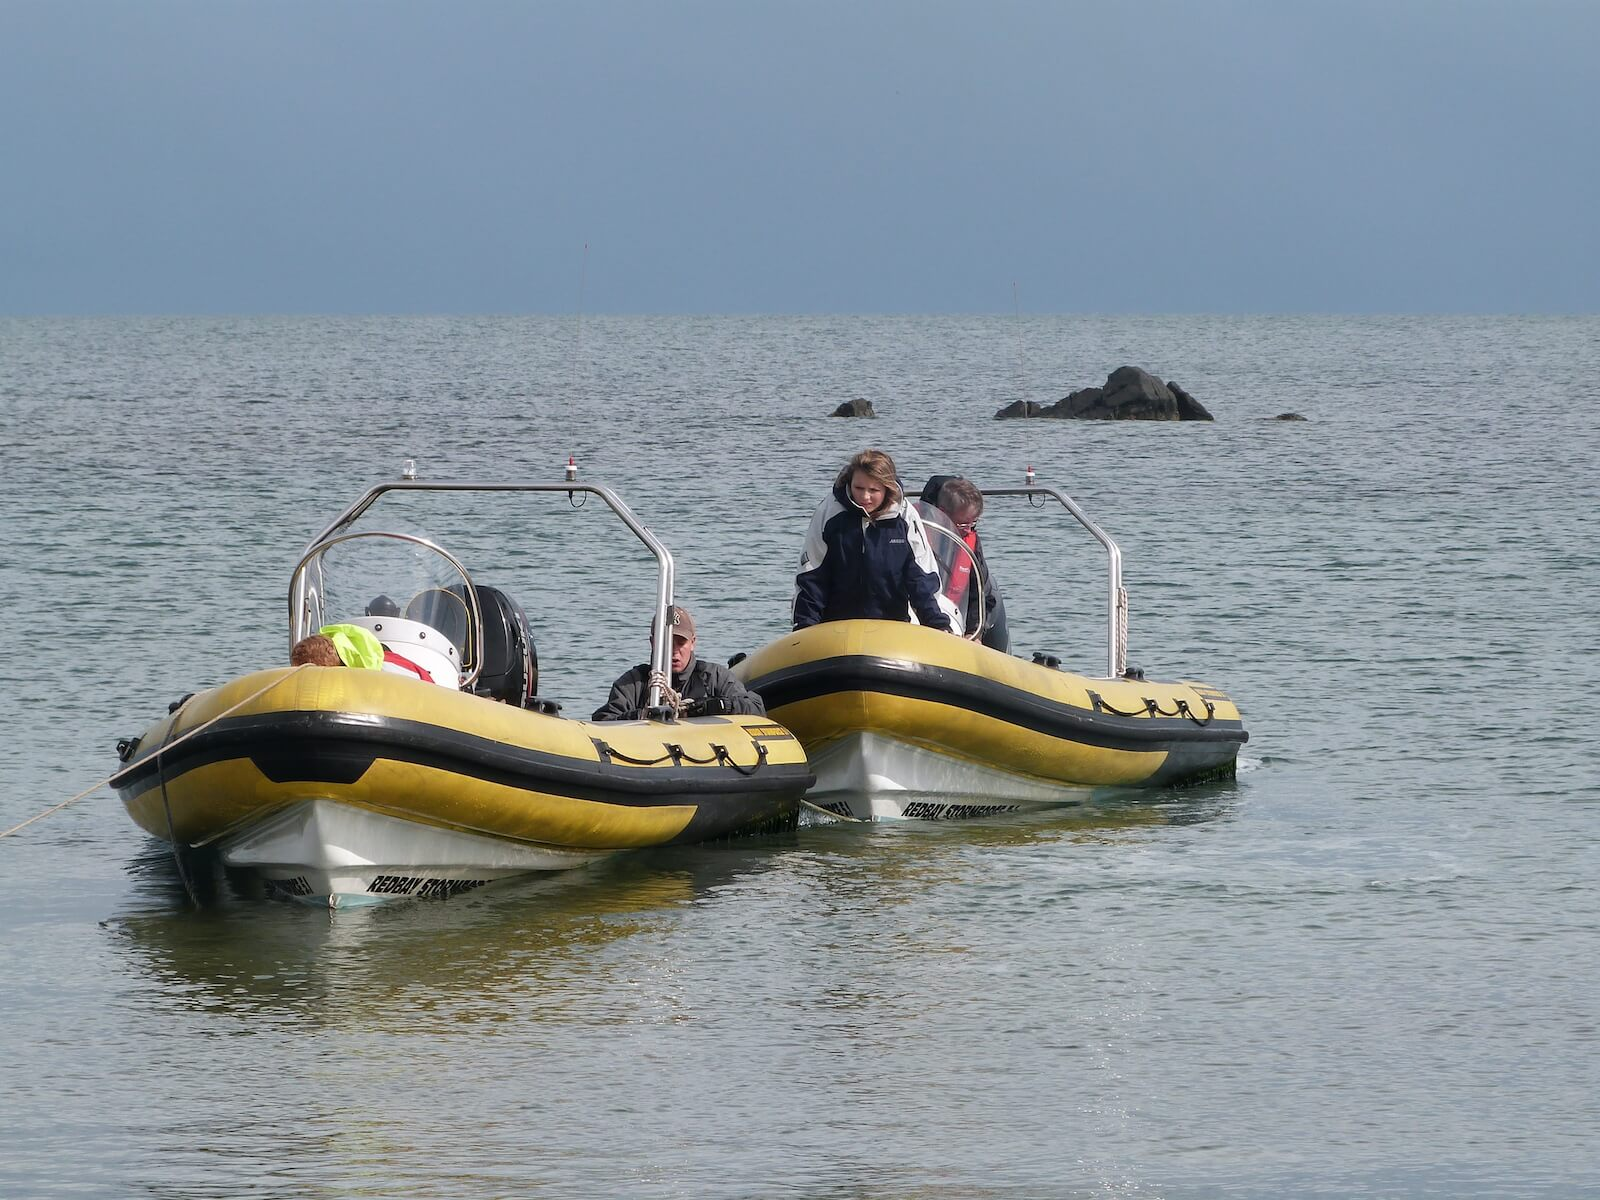 Return to water - Recreational Club Racing Safety / Support Crew - Wednesday evening.